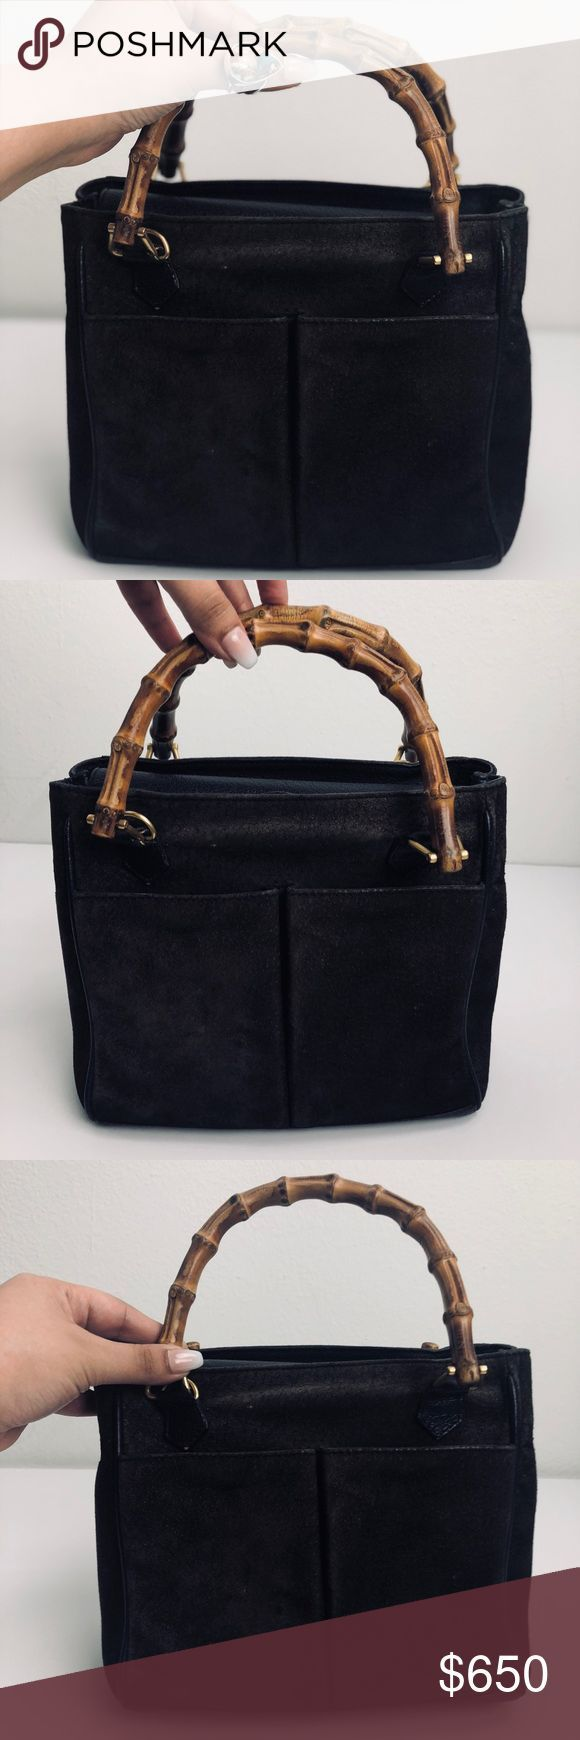 5ae40658be0 Gucci RARE Vintage Bamboo Handle Bag Authentic Brown suede vintage Gucci  tote with gold-tone